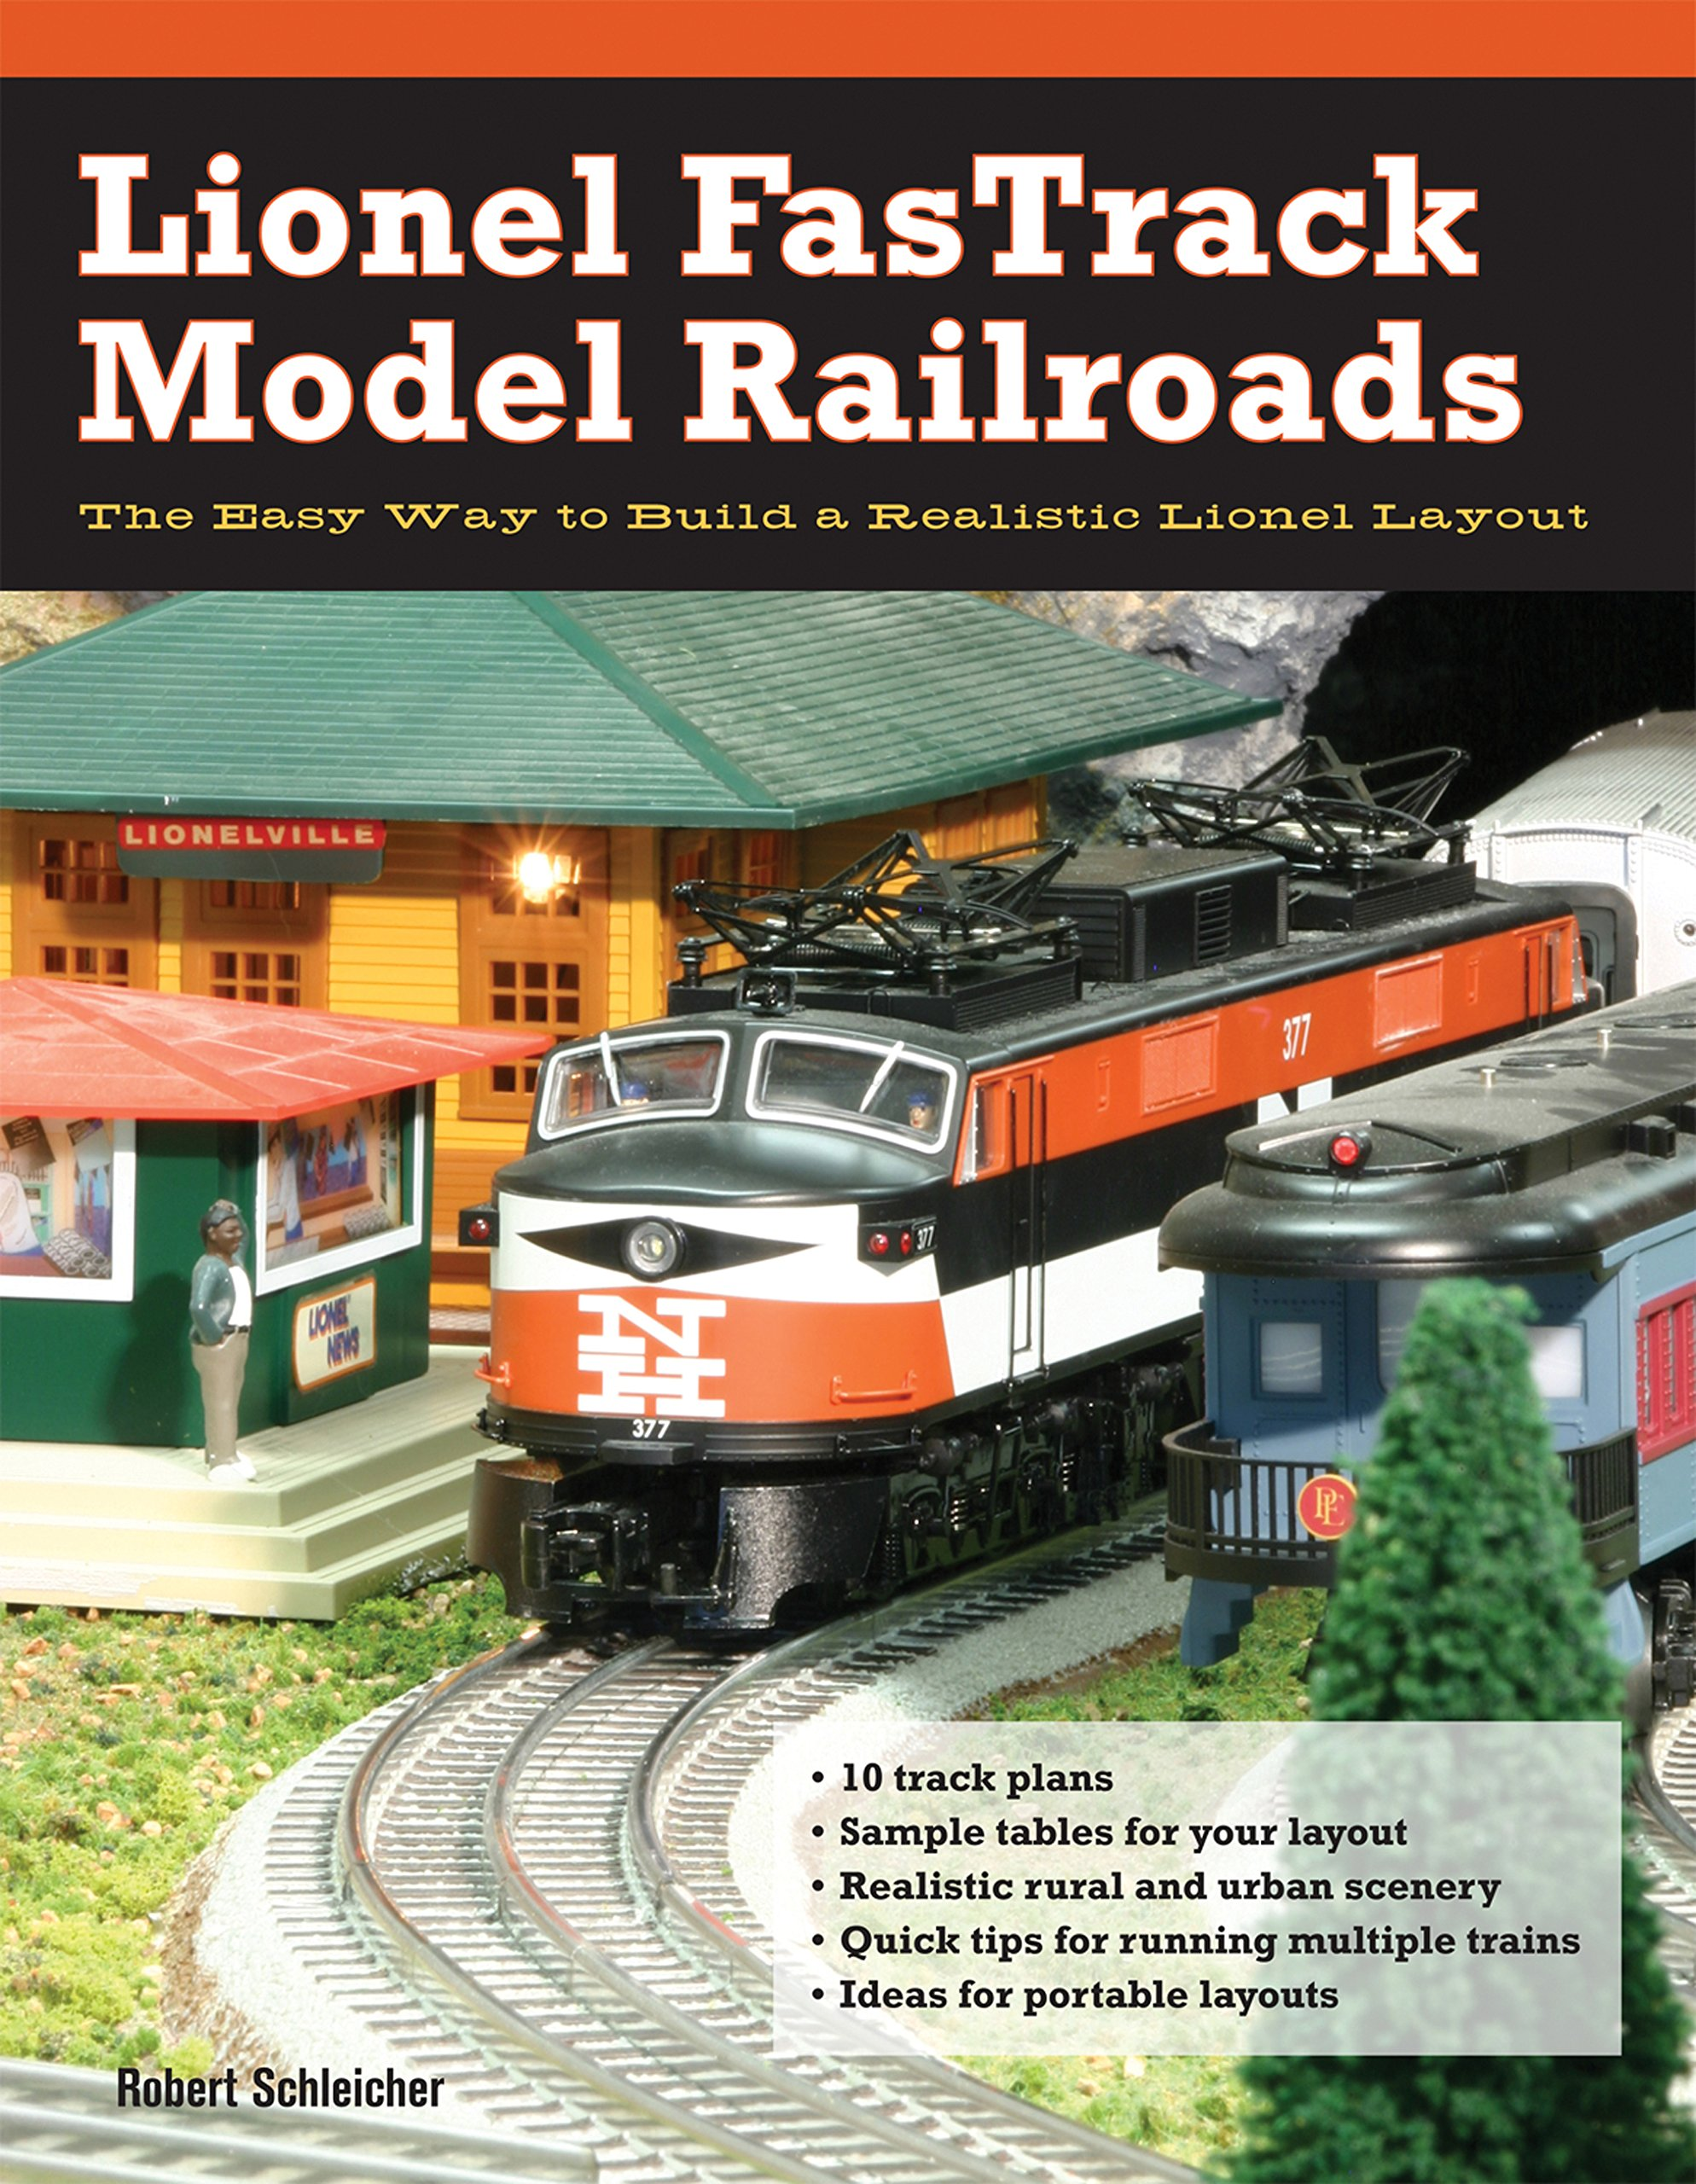 Lionel Fastrack Model Railroads The Easy Way To Build A Realistic Train Track Wiring Layout Robert Schleicher 9780760335901 Books